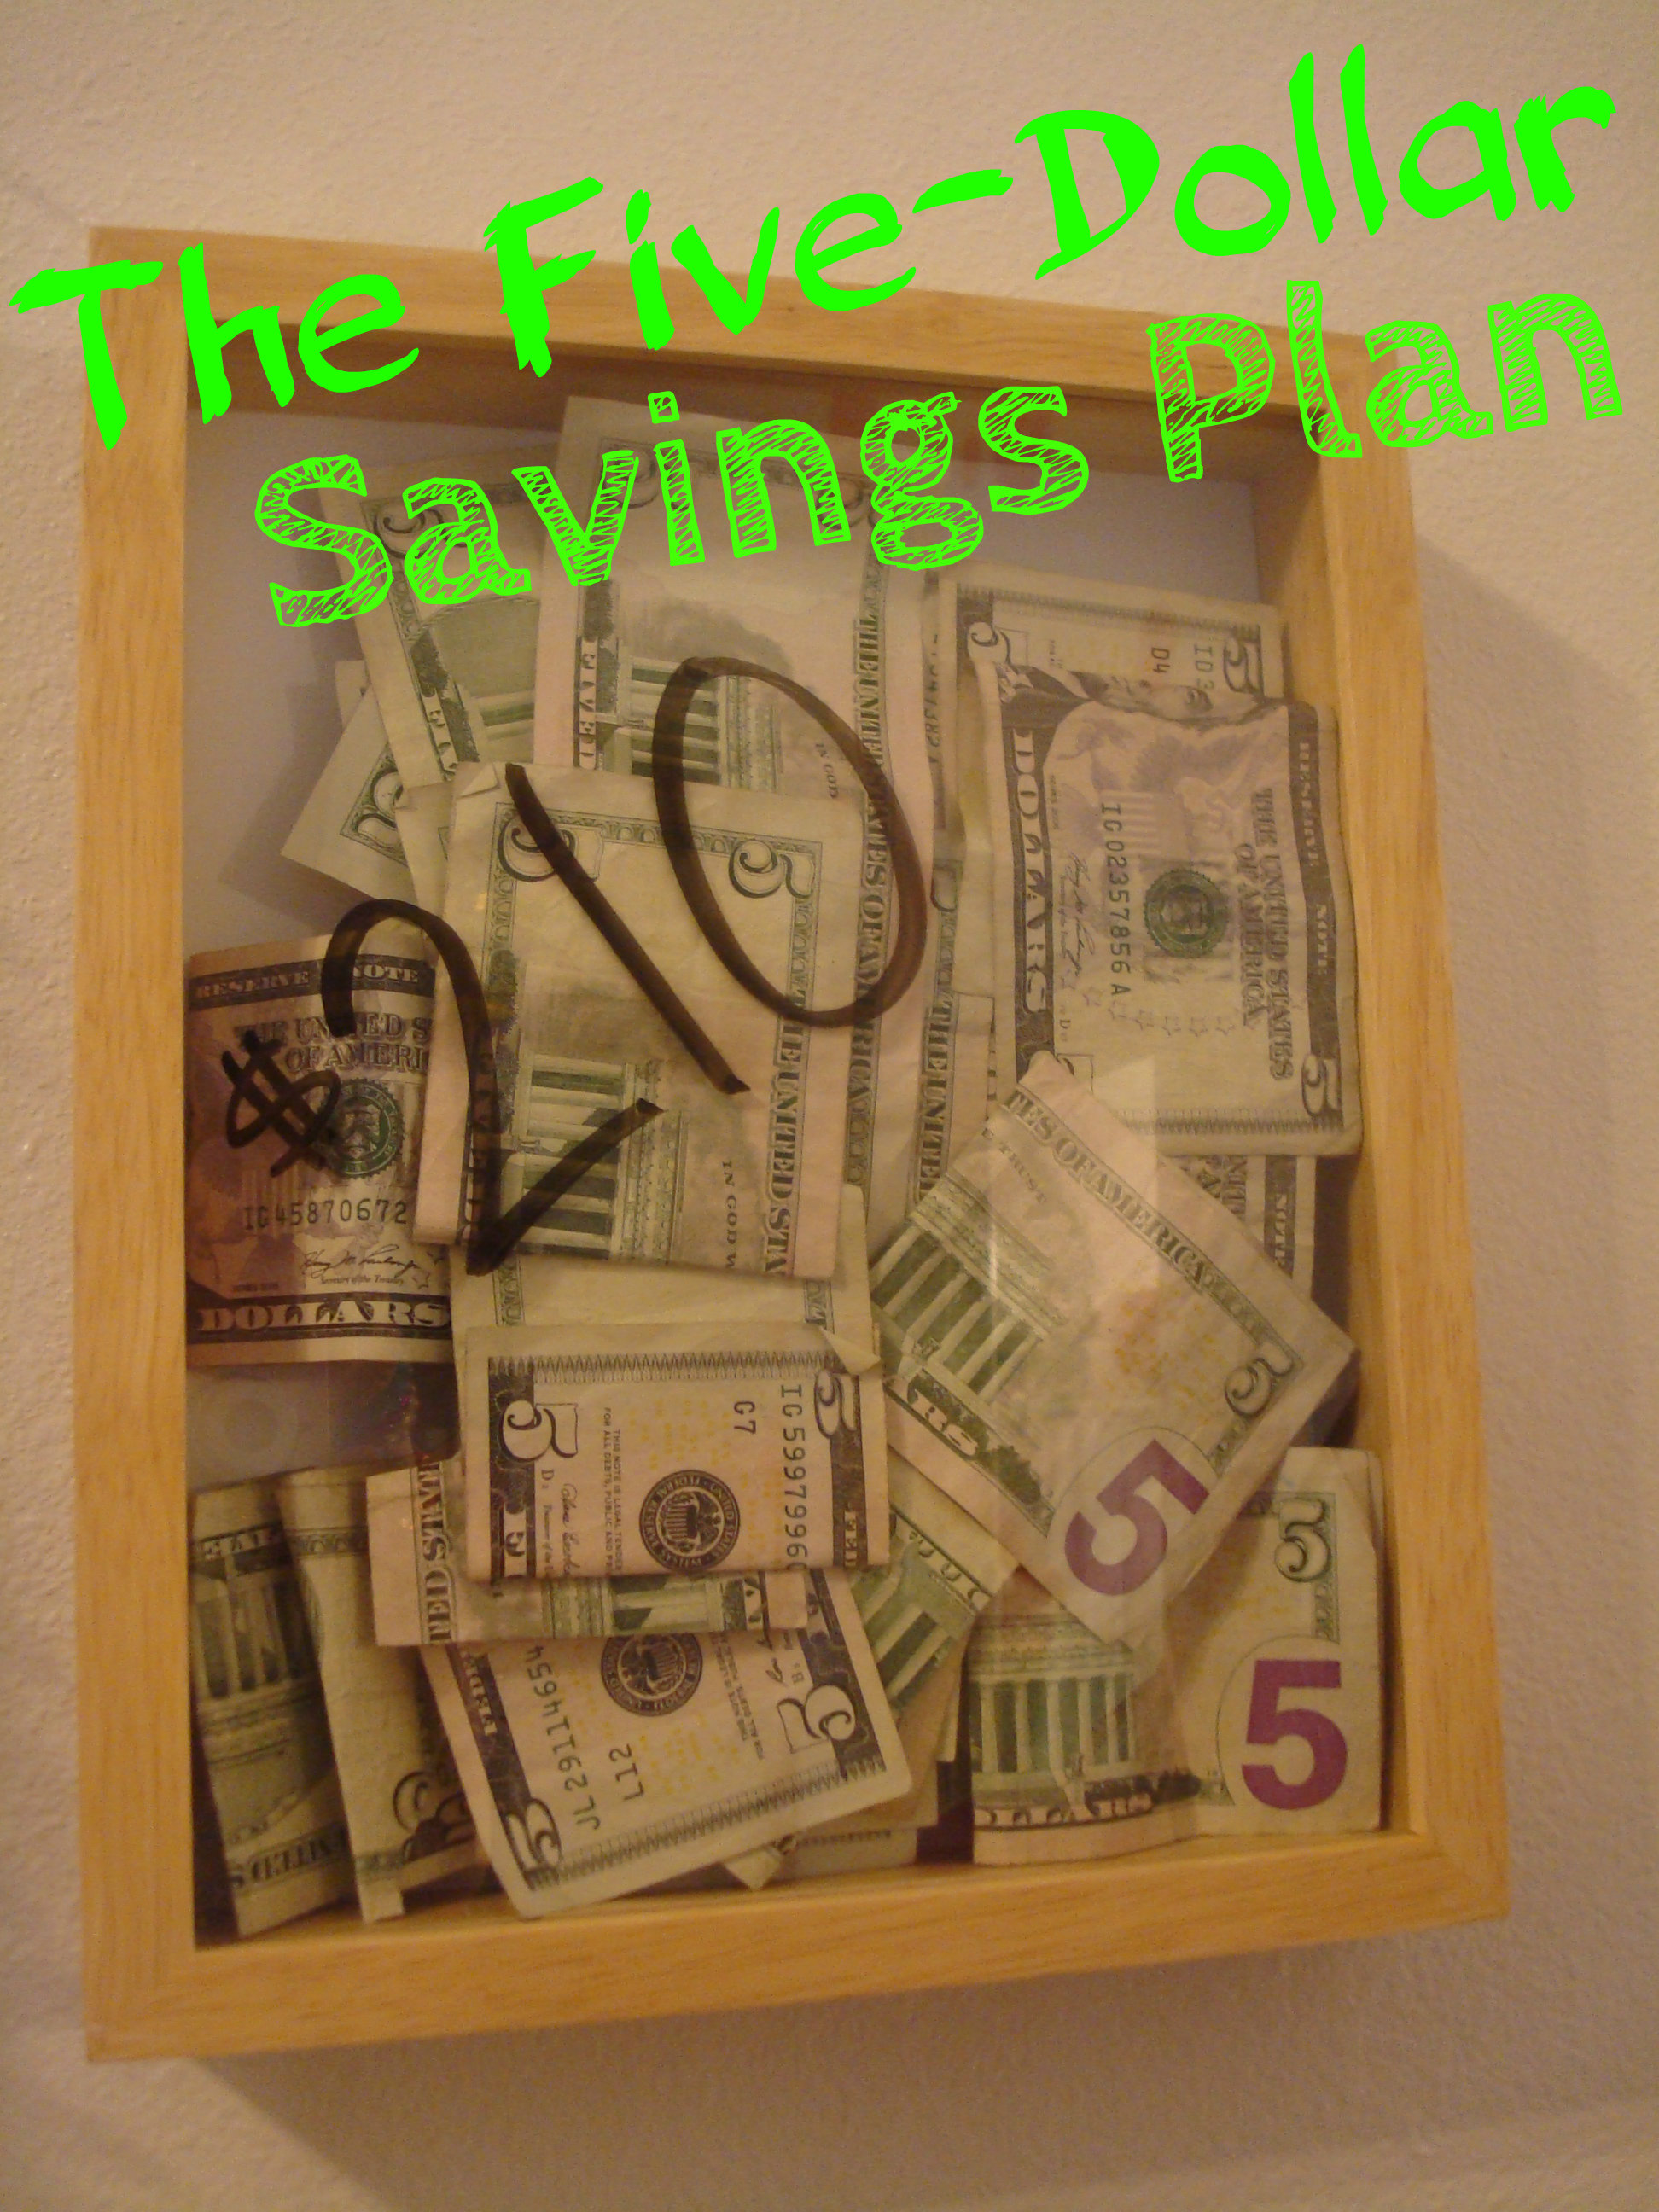 The $5 Saving Plan... Seeing is Believing